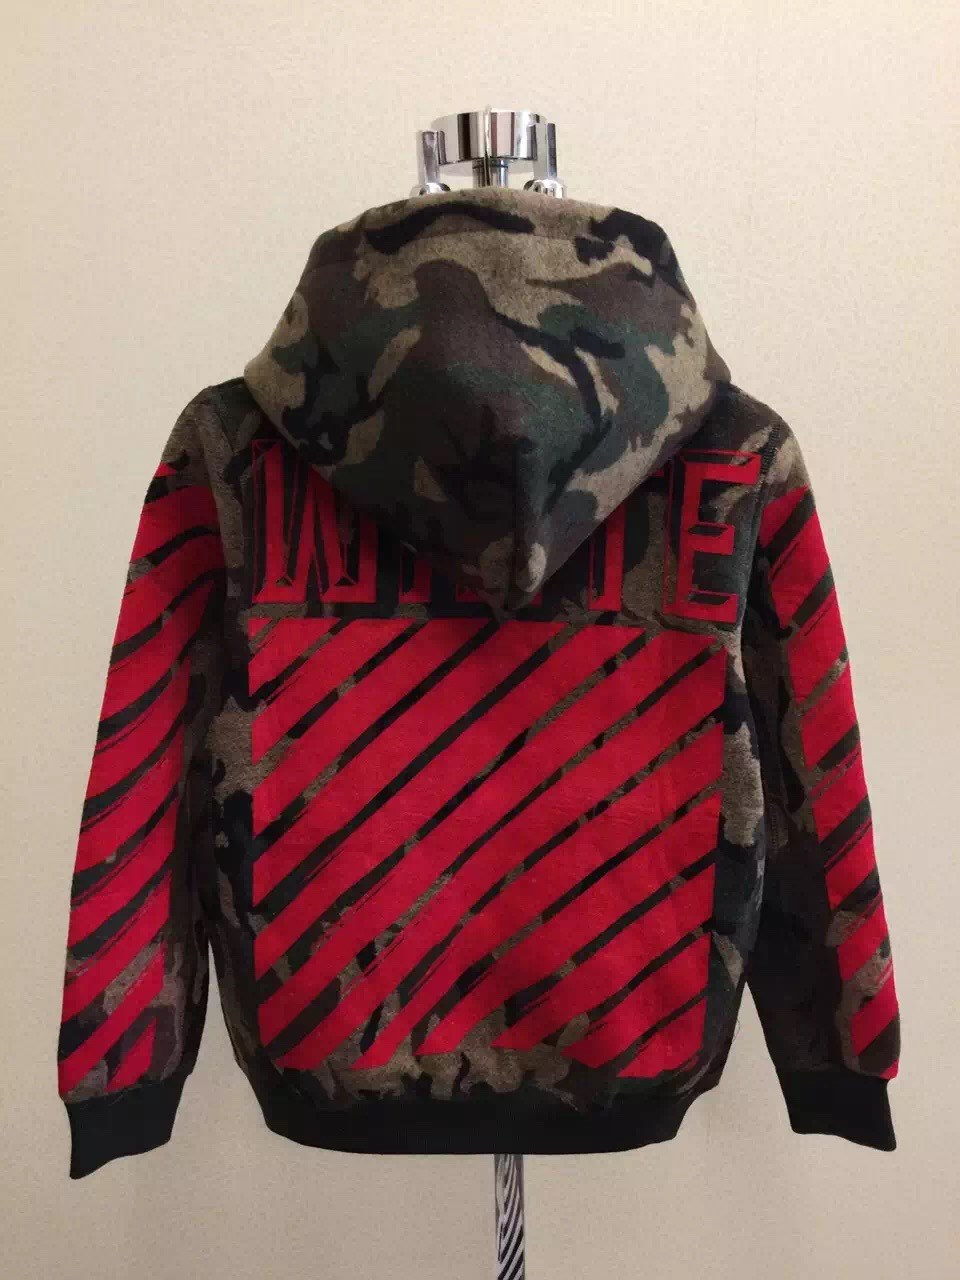 new hip hop streetwear kanye west OFF-WHITE hoodies jacket Military Style Camouflage men cotton hooded sweatshirt hoody PulloverОдежда и ак�е��уары<br><br><br>Aliexpress